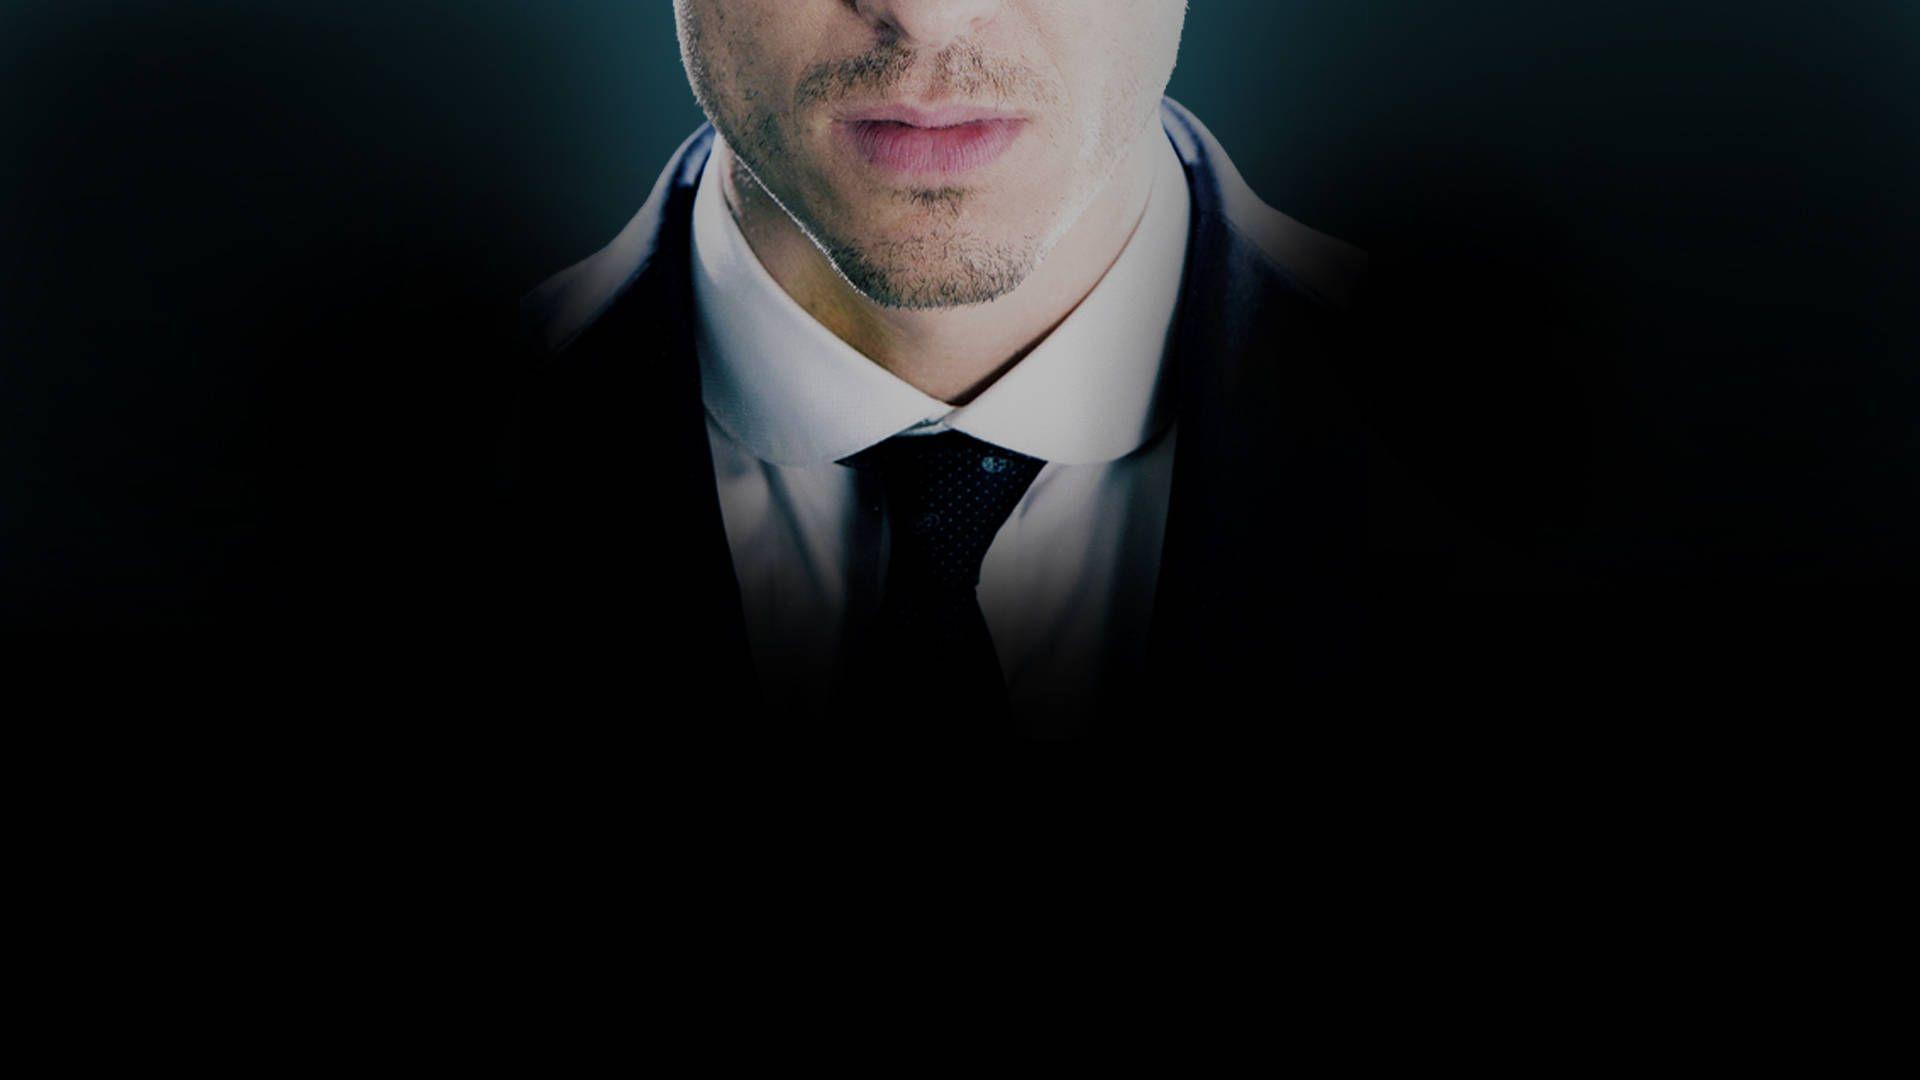 jim moriarty images hd - photo #1